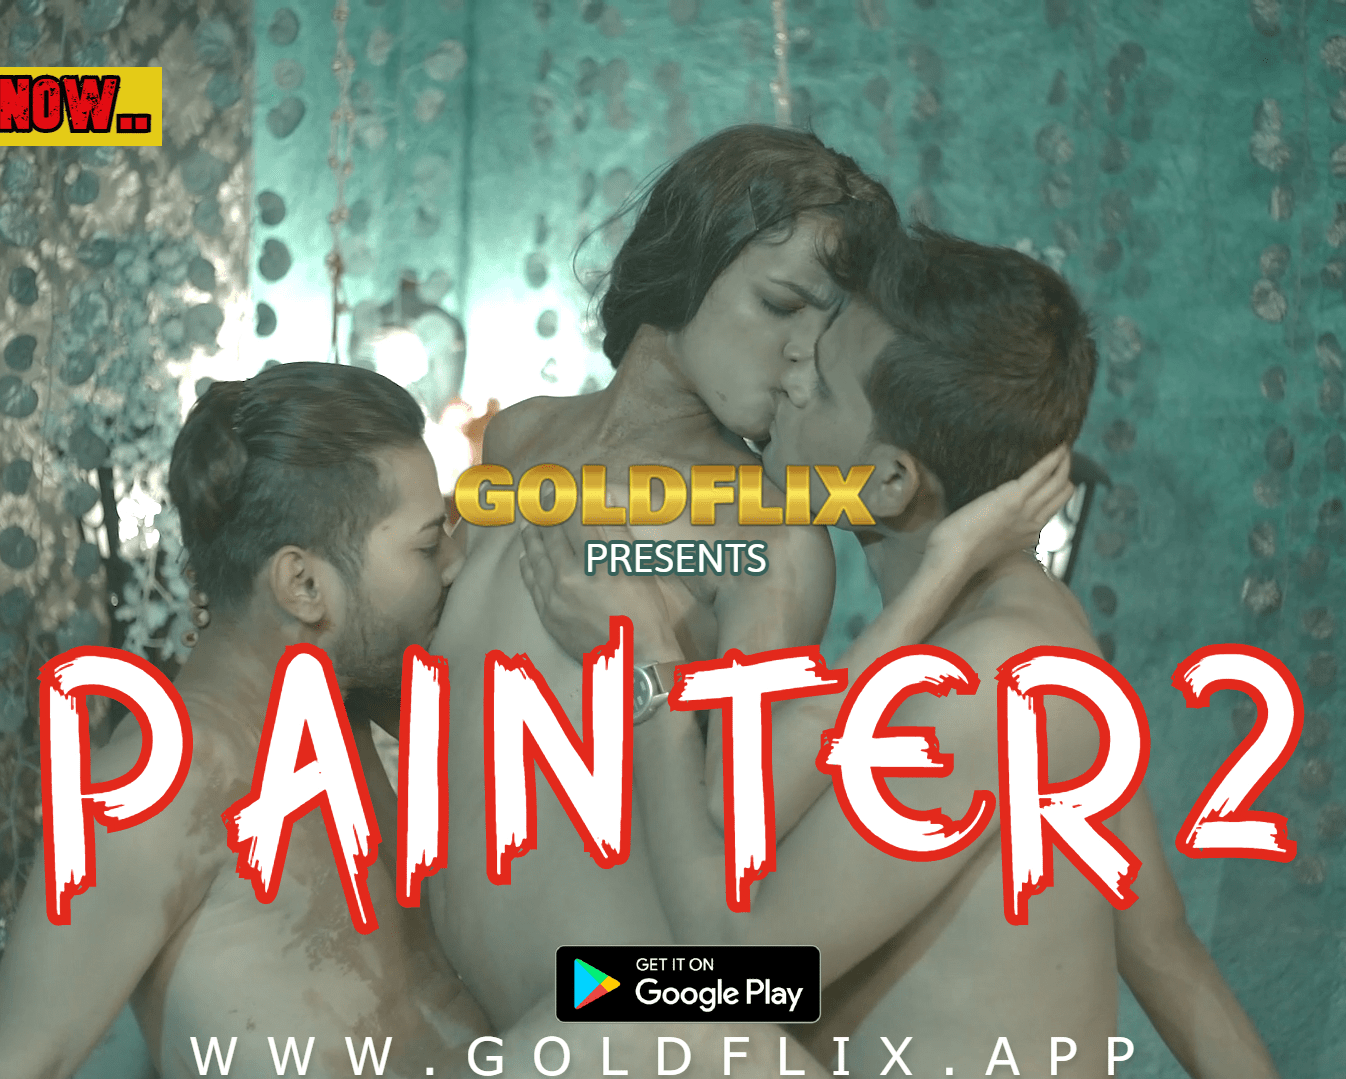 18+ Painter 2 (2021) GoldFlix UNCUT Hindi Short Film 720p HDRip 200MB Download